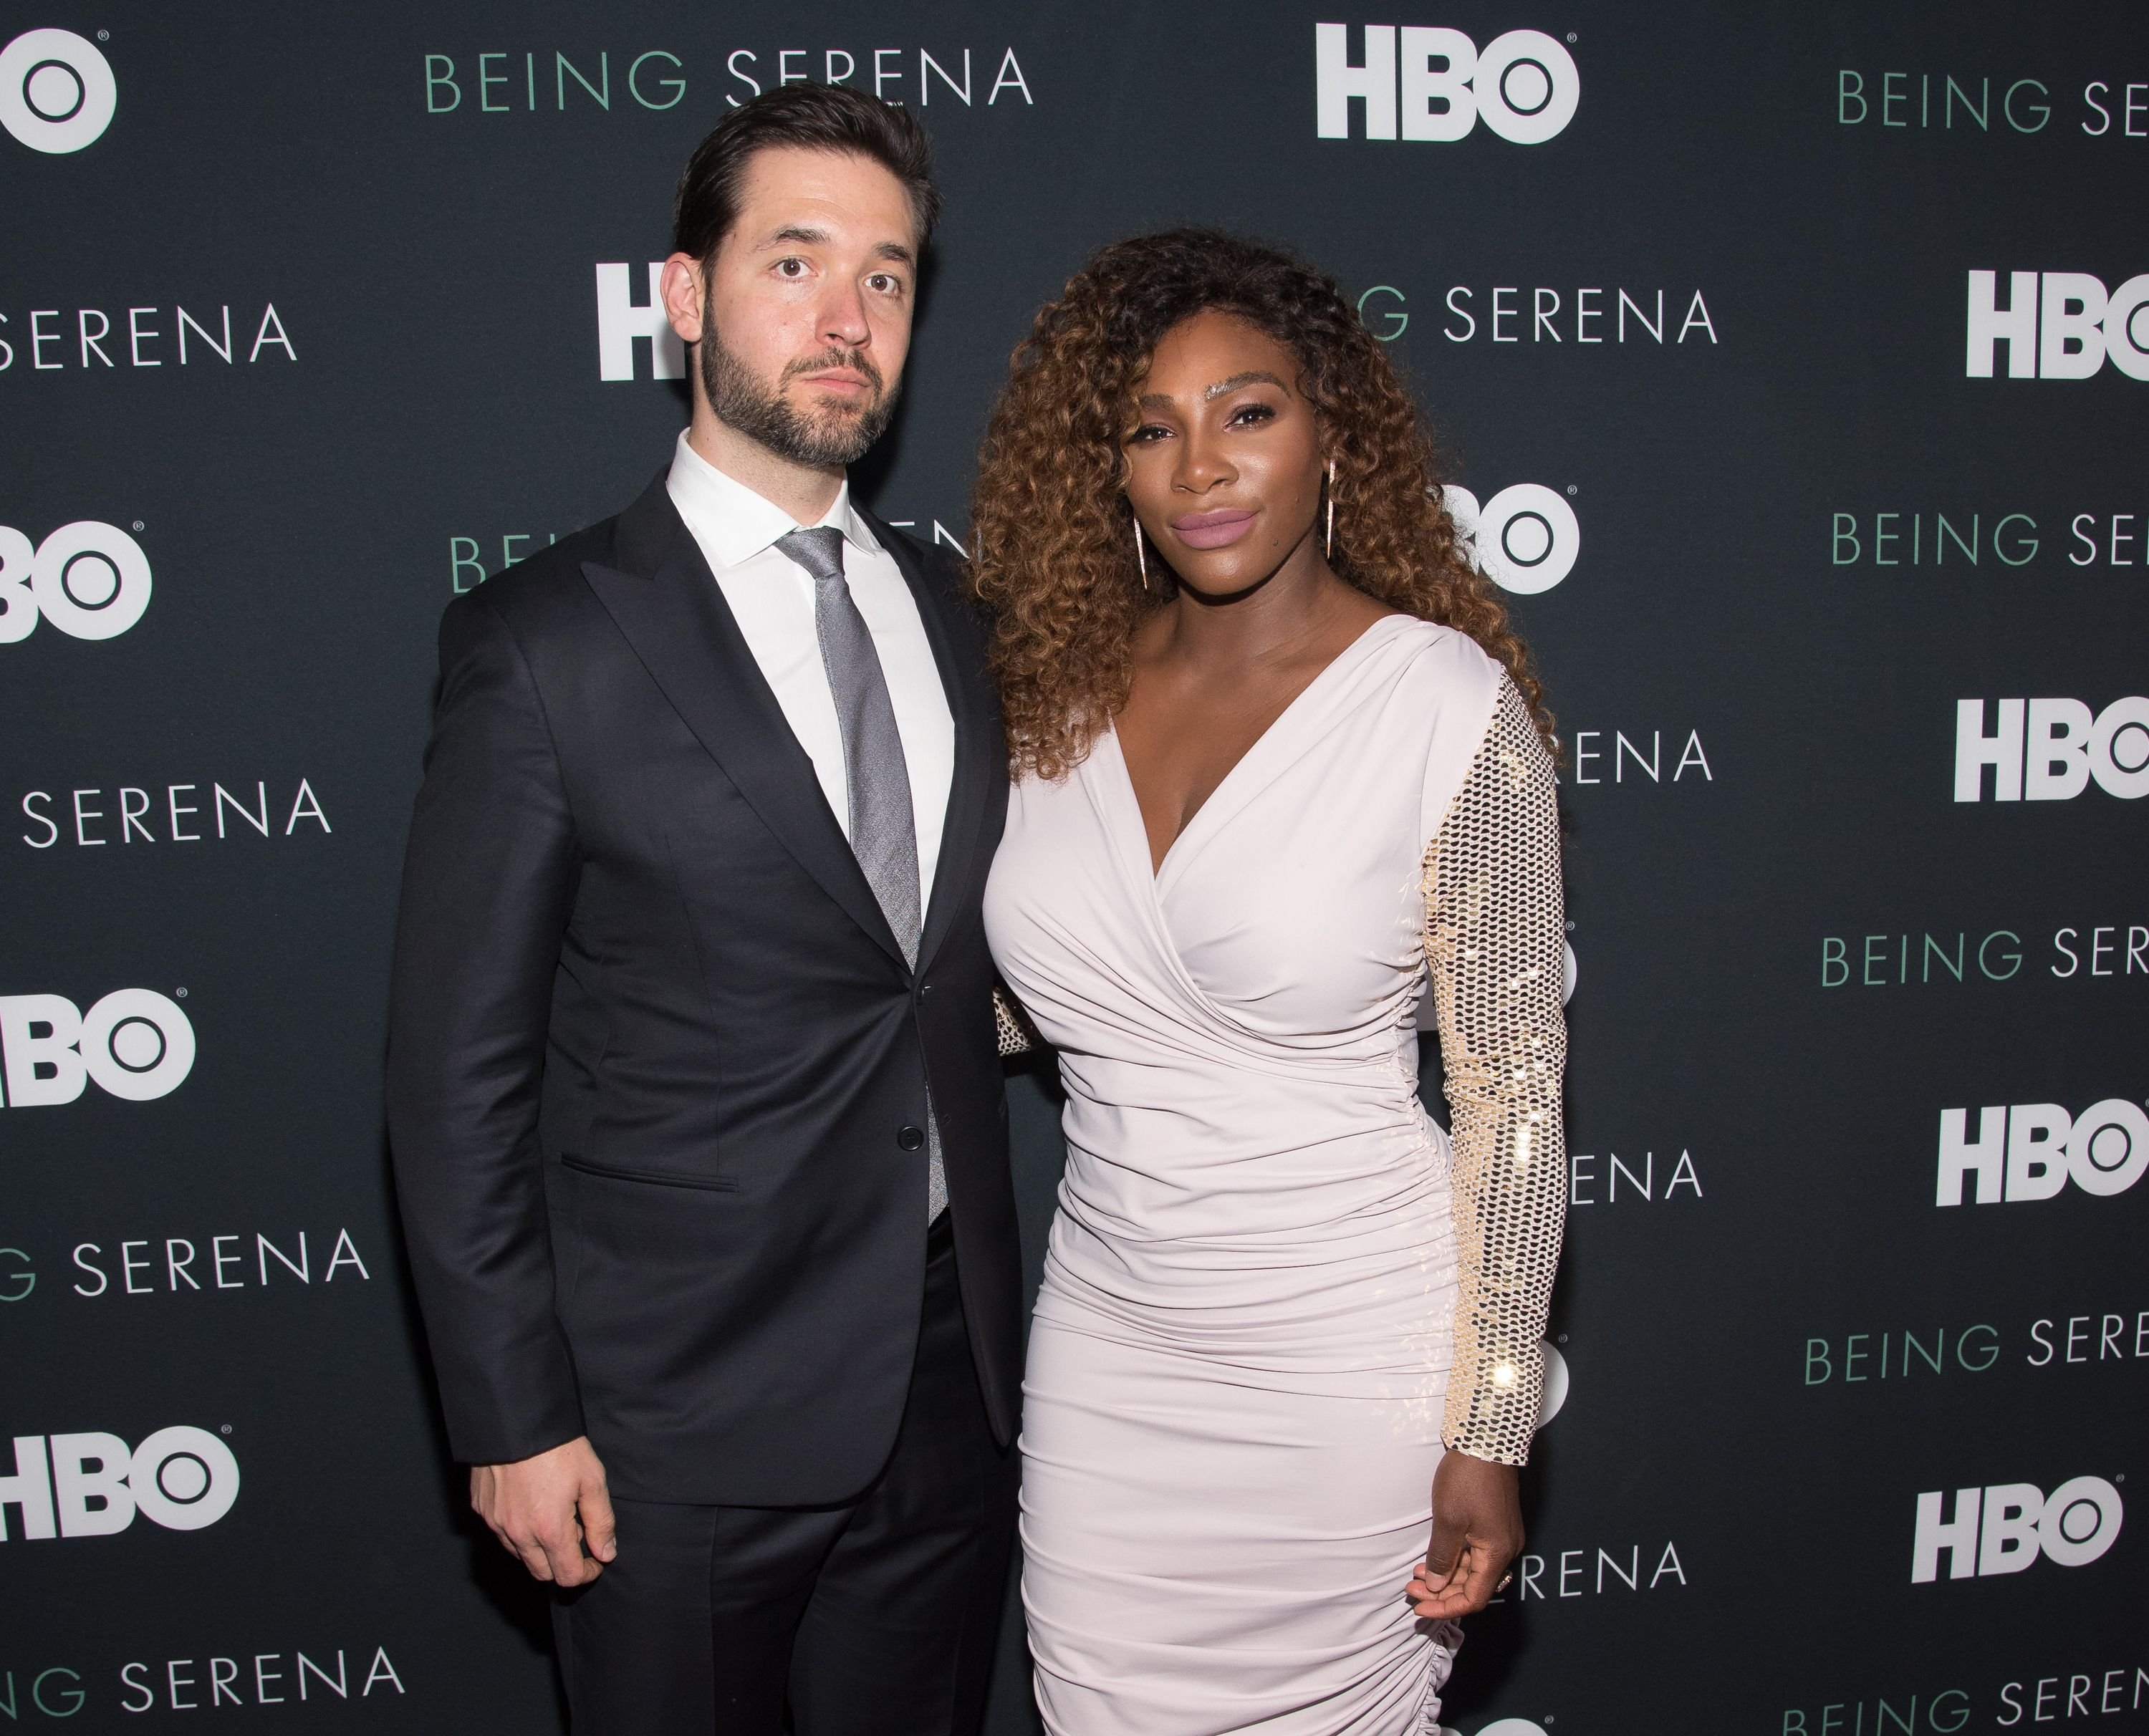 """Serena Williams and Alexis Ohanian at the """"Being Serena"""" New York premiere at Time Warner Center on April 25, 2018 